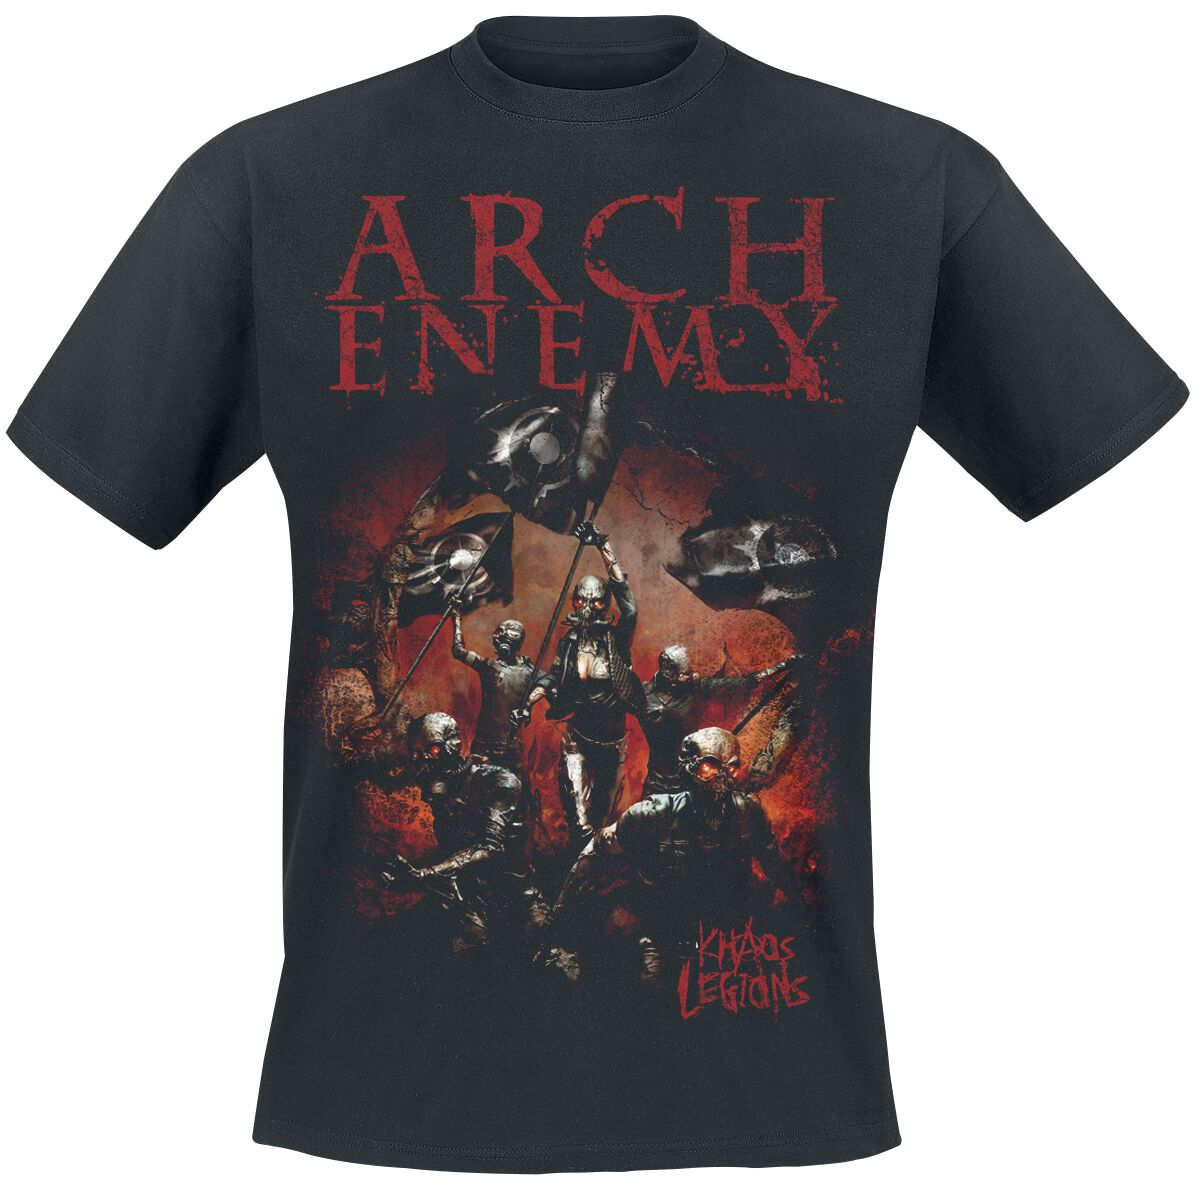 Image of   Arch Enemy Khaos legions T-Shirt sort